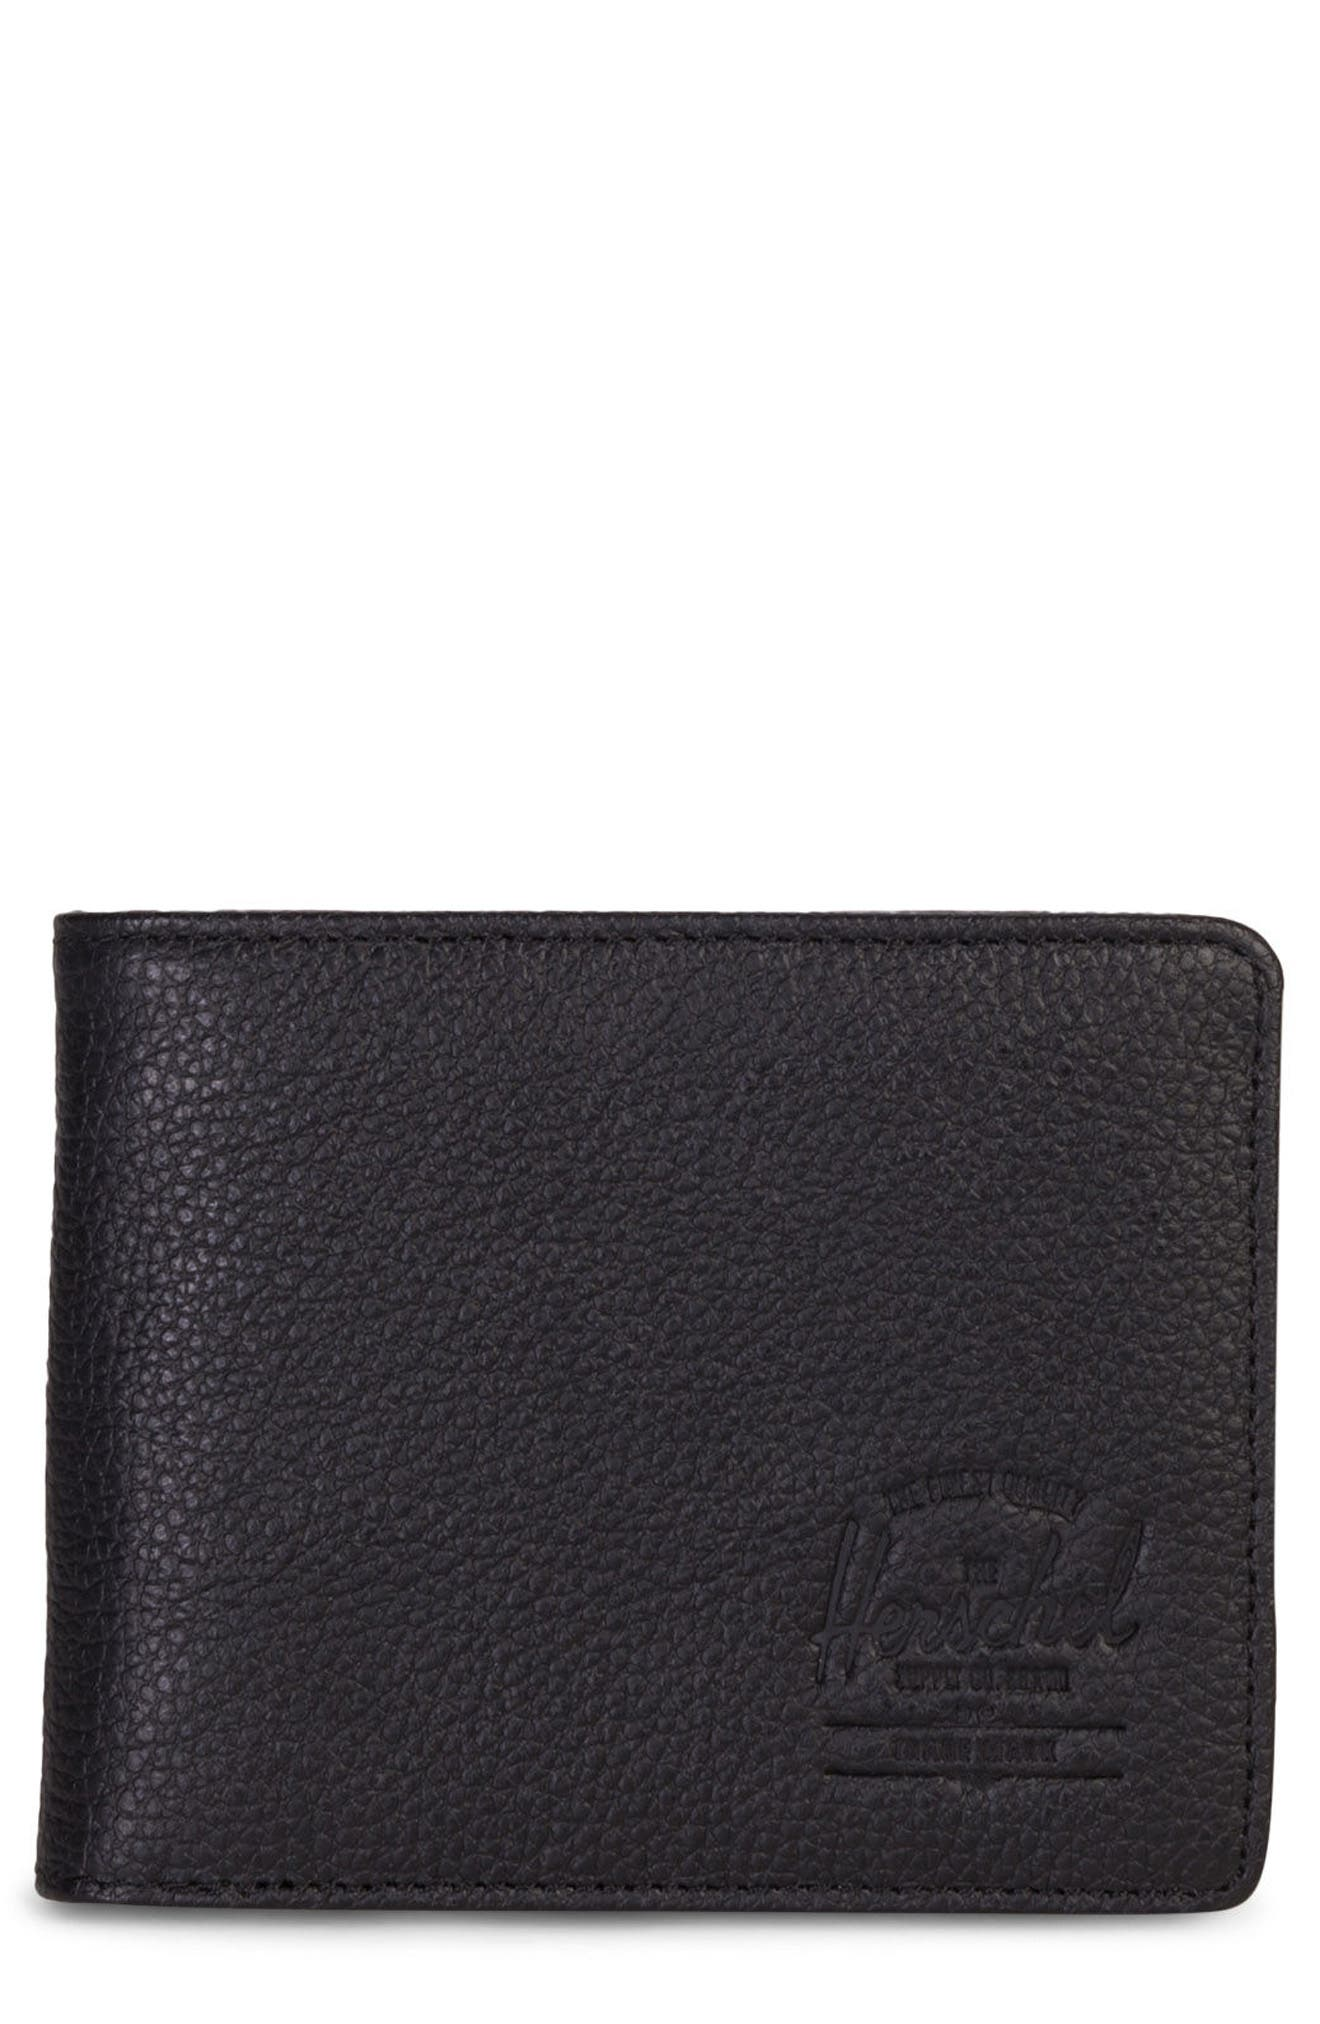 Hank Leather Wallet,                         Main,                         color, Black Pebbled Leather